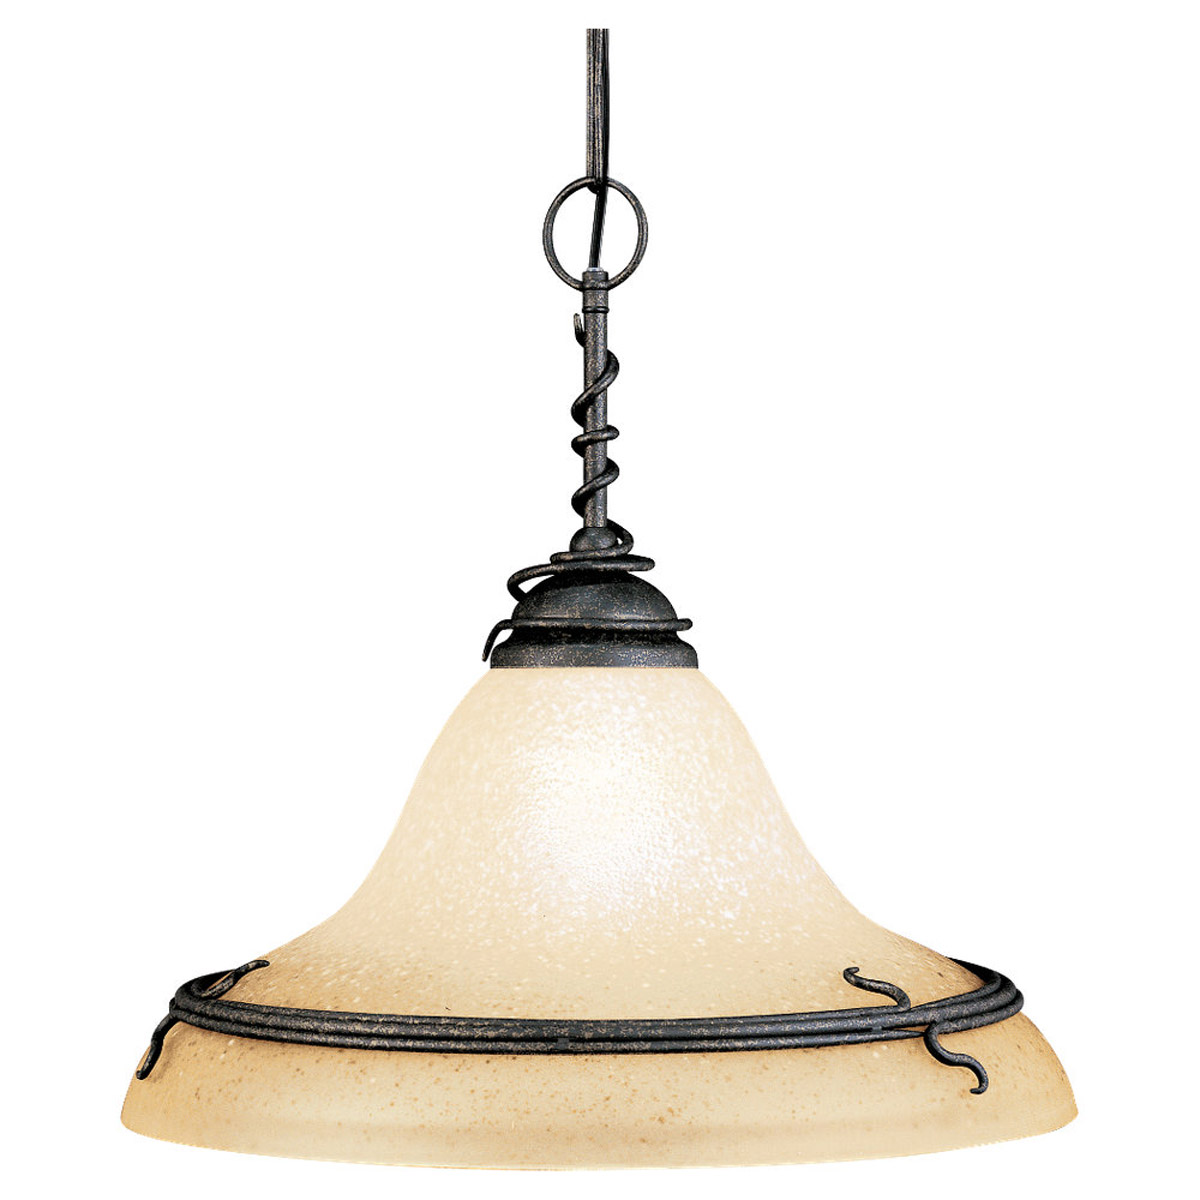 Sea Gull Lighting Saranac Lake 1 Light Pendant in Forged Iron 6610-185